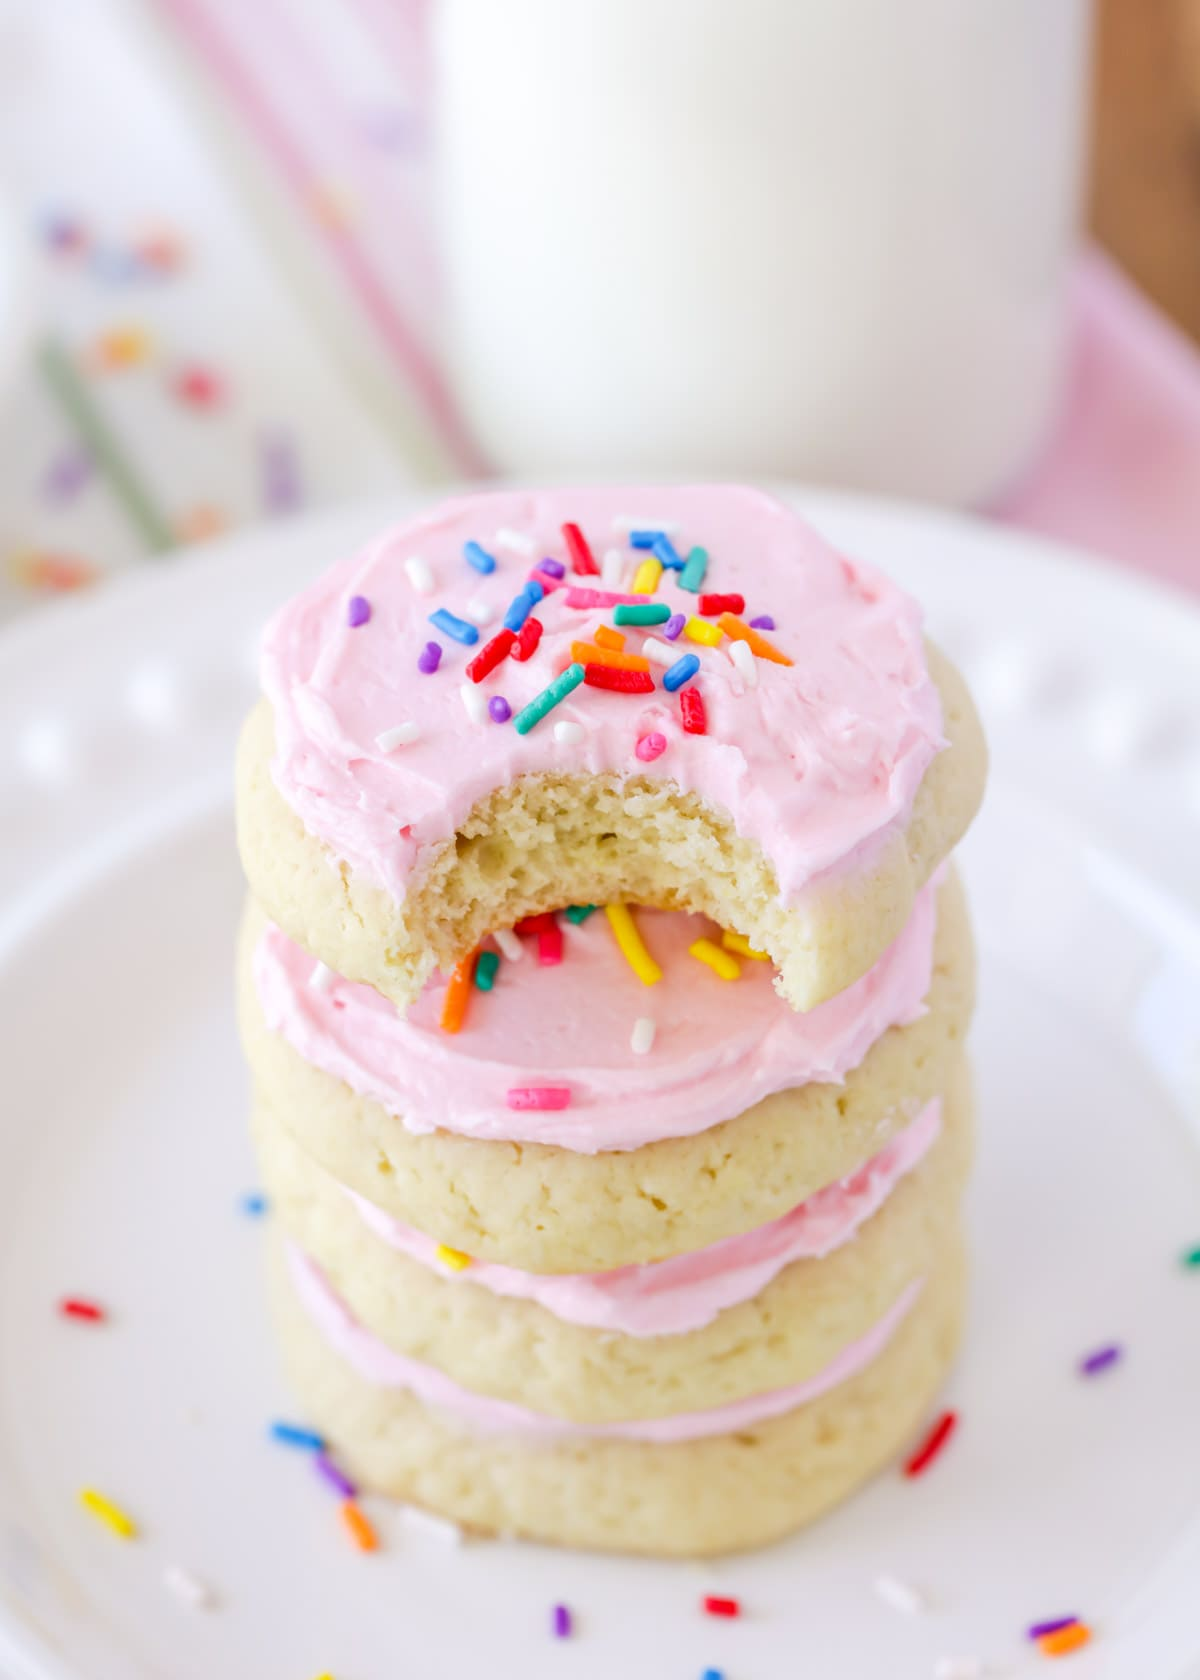 Lofthouse Sugar Cookies Recipe stacked on plate